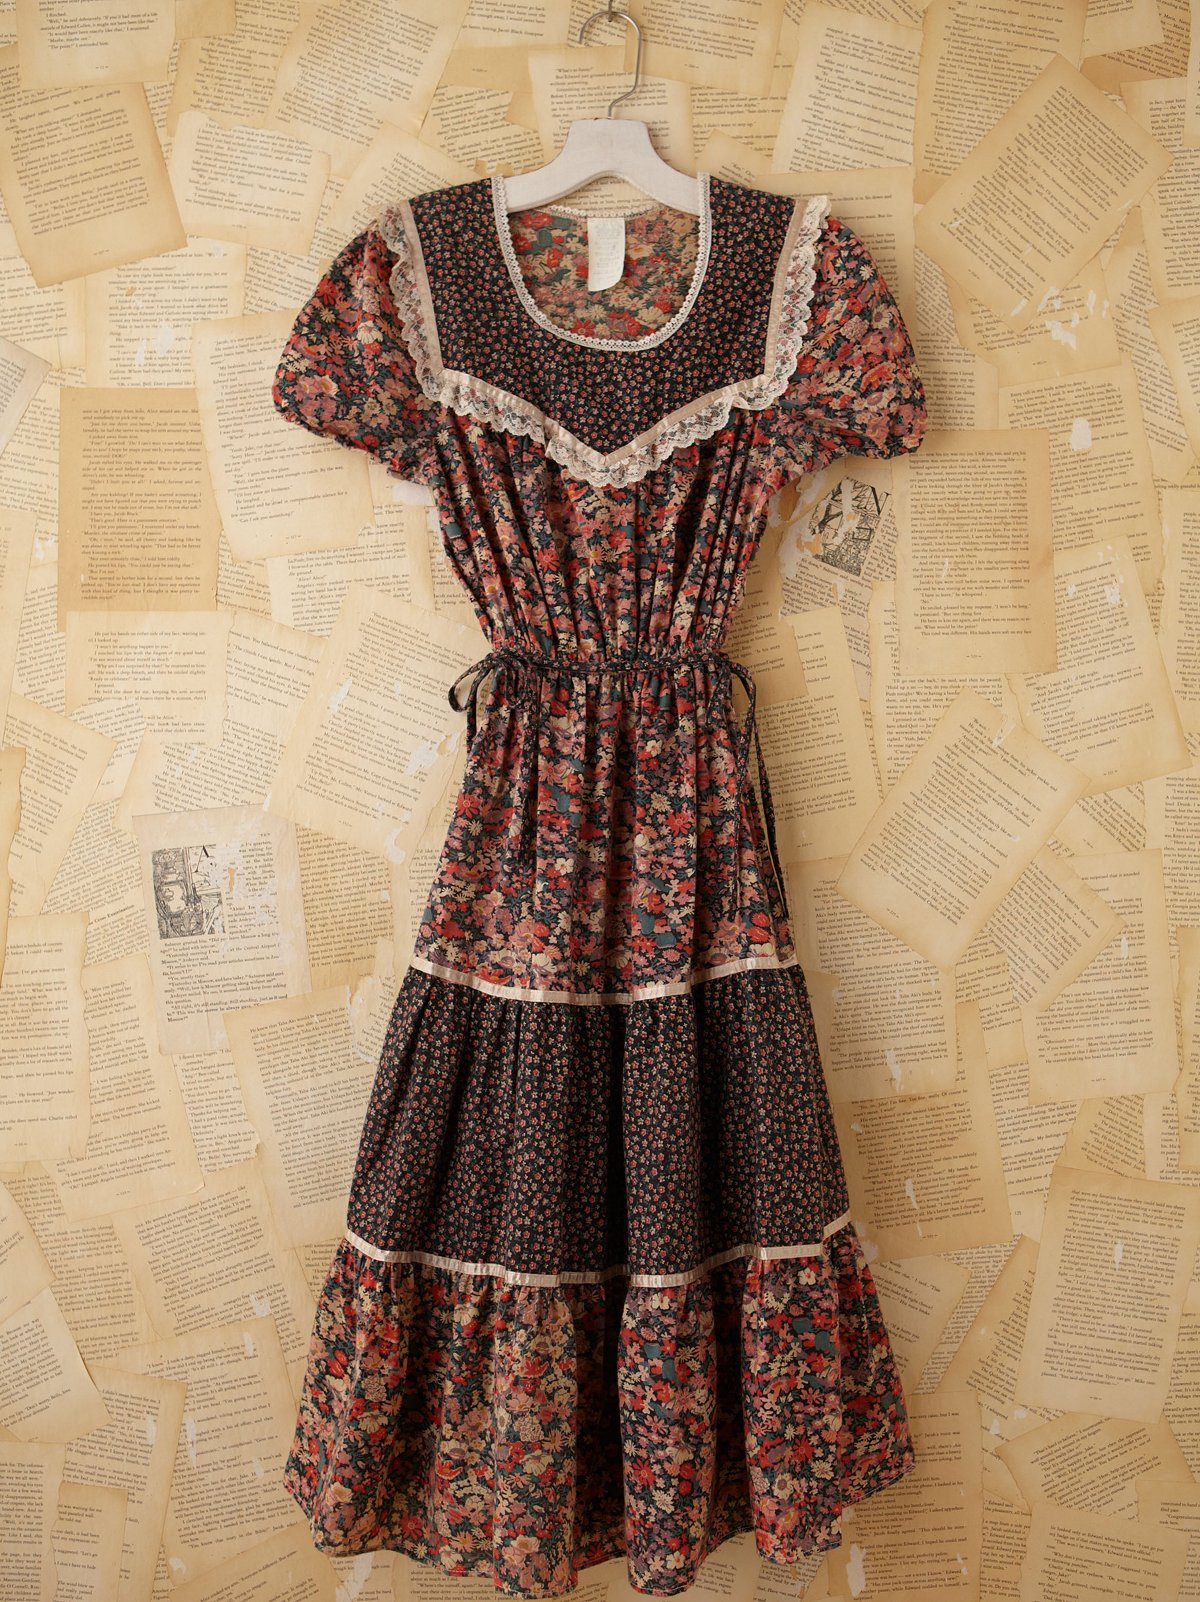 Vintage Floral Printed Prairie Dress